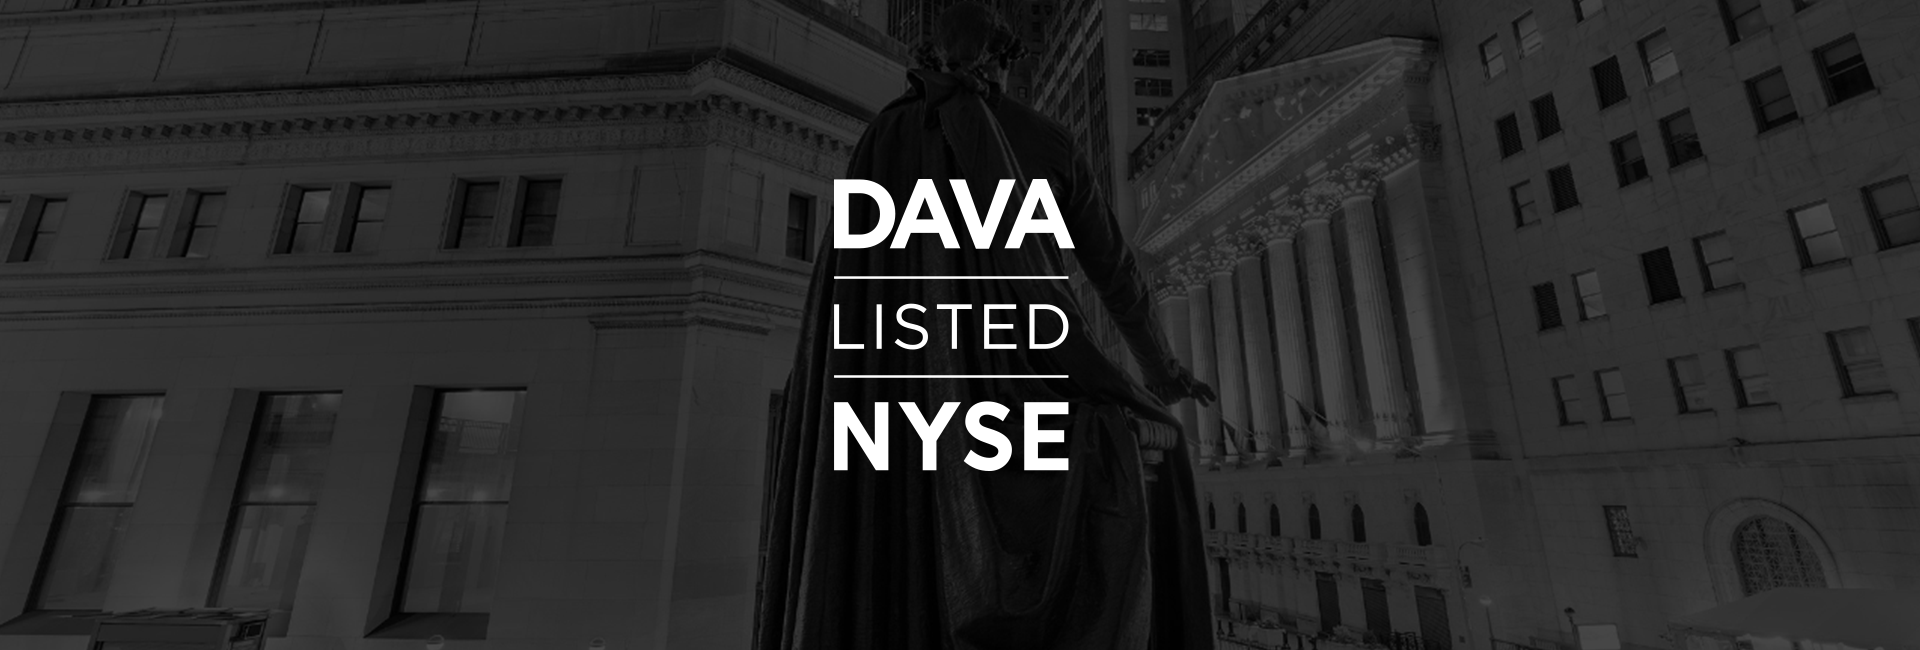 DAVA Listed NYSE